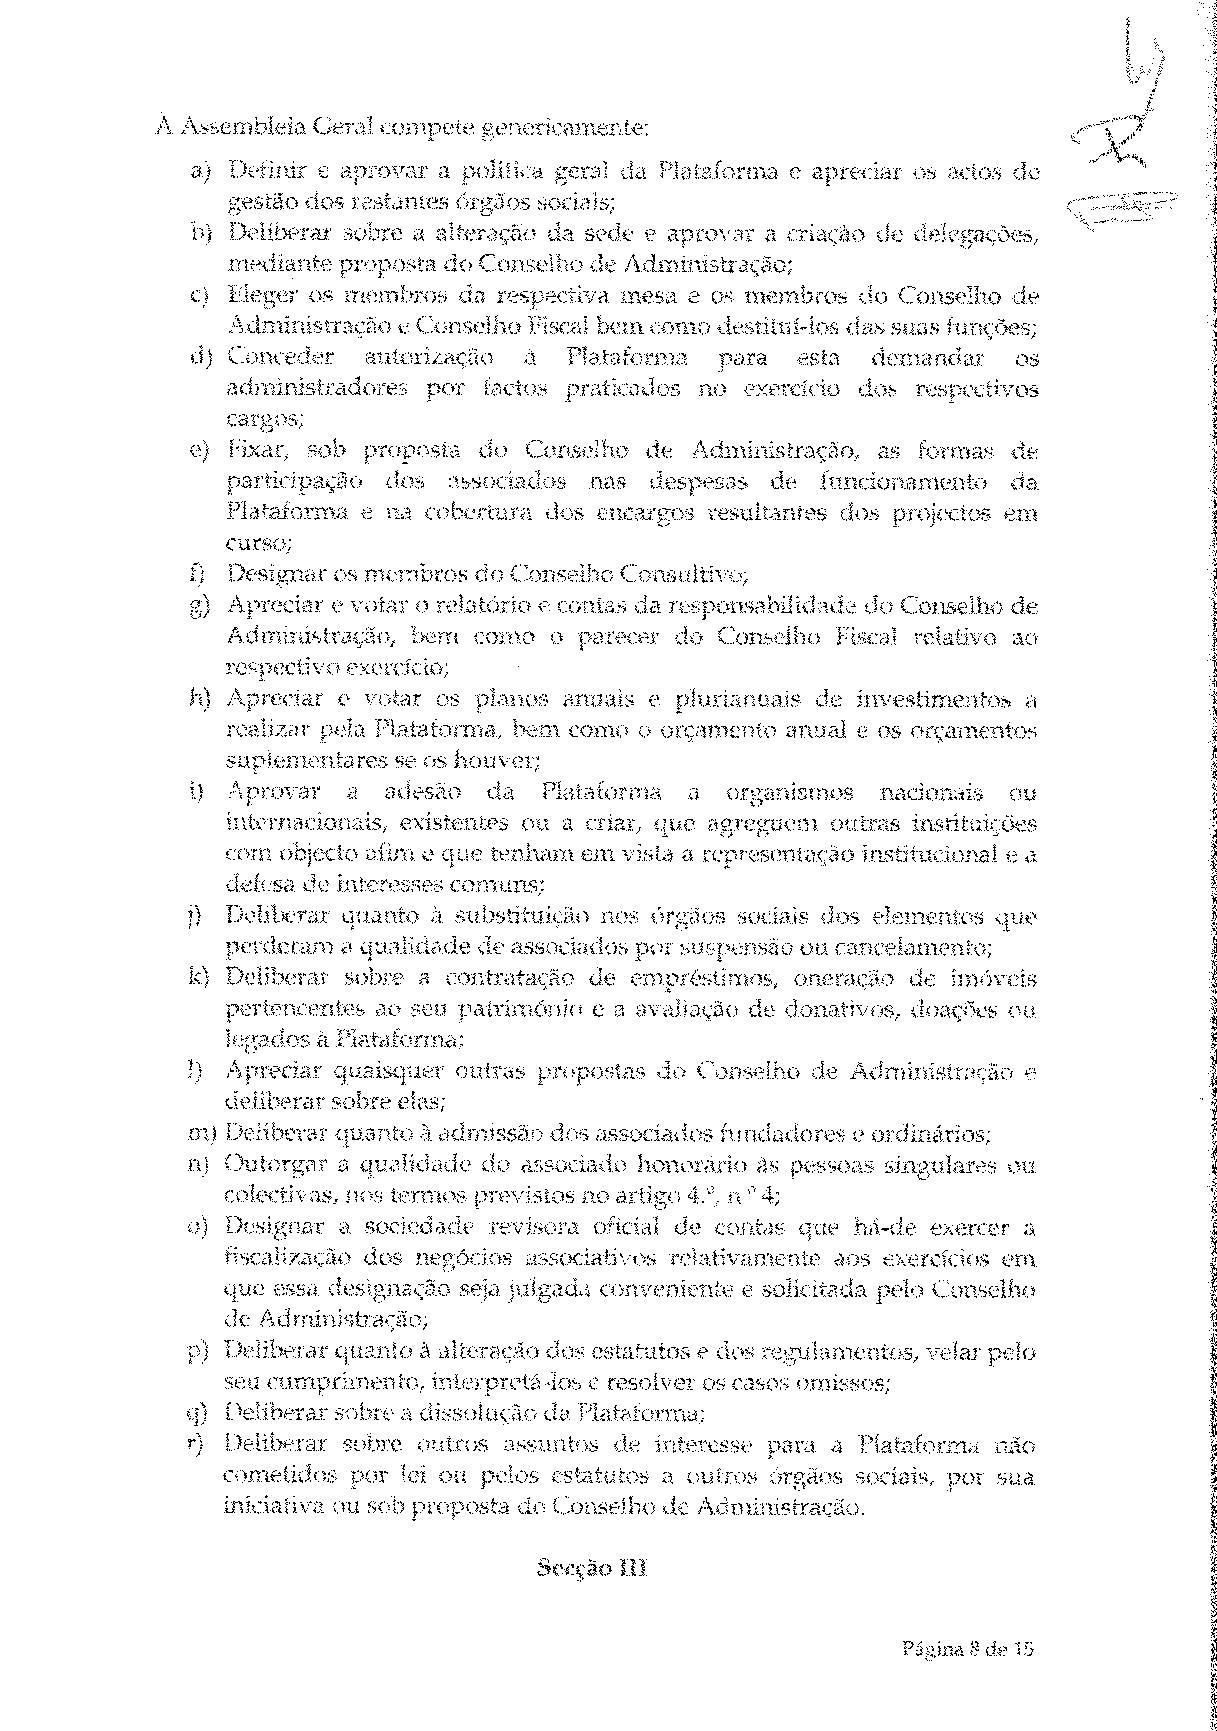 509402267_Associacao_BLC_rectificacao (5)-page-014